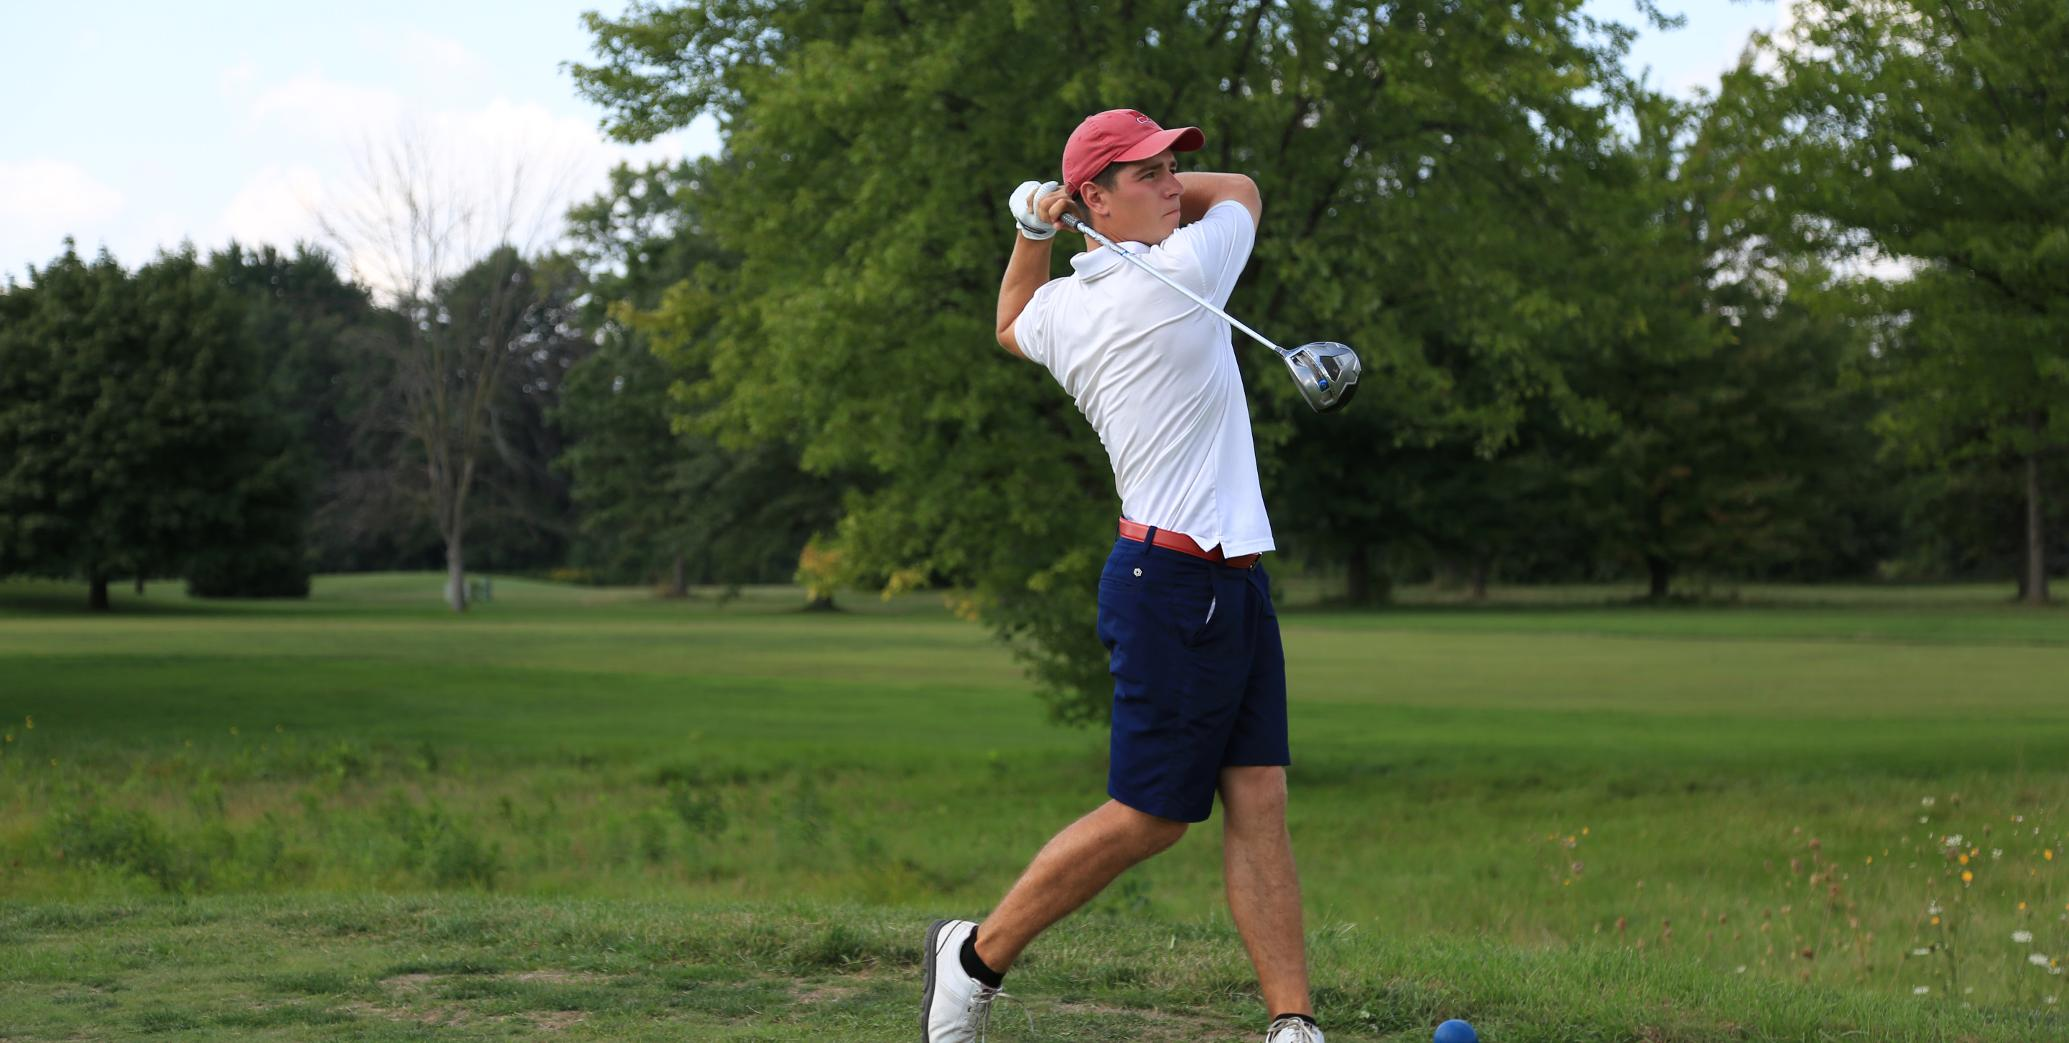 Ryan Peruski fired an opening round score of 70 (-2) at the Big Blue Course in Lexington...